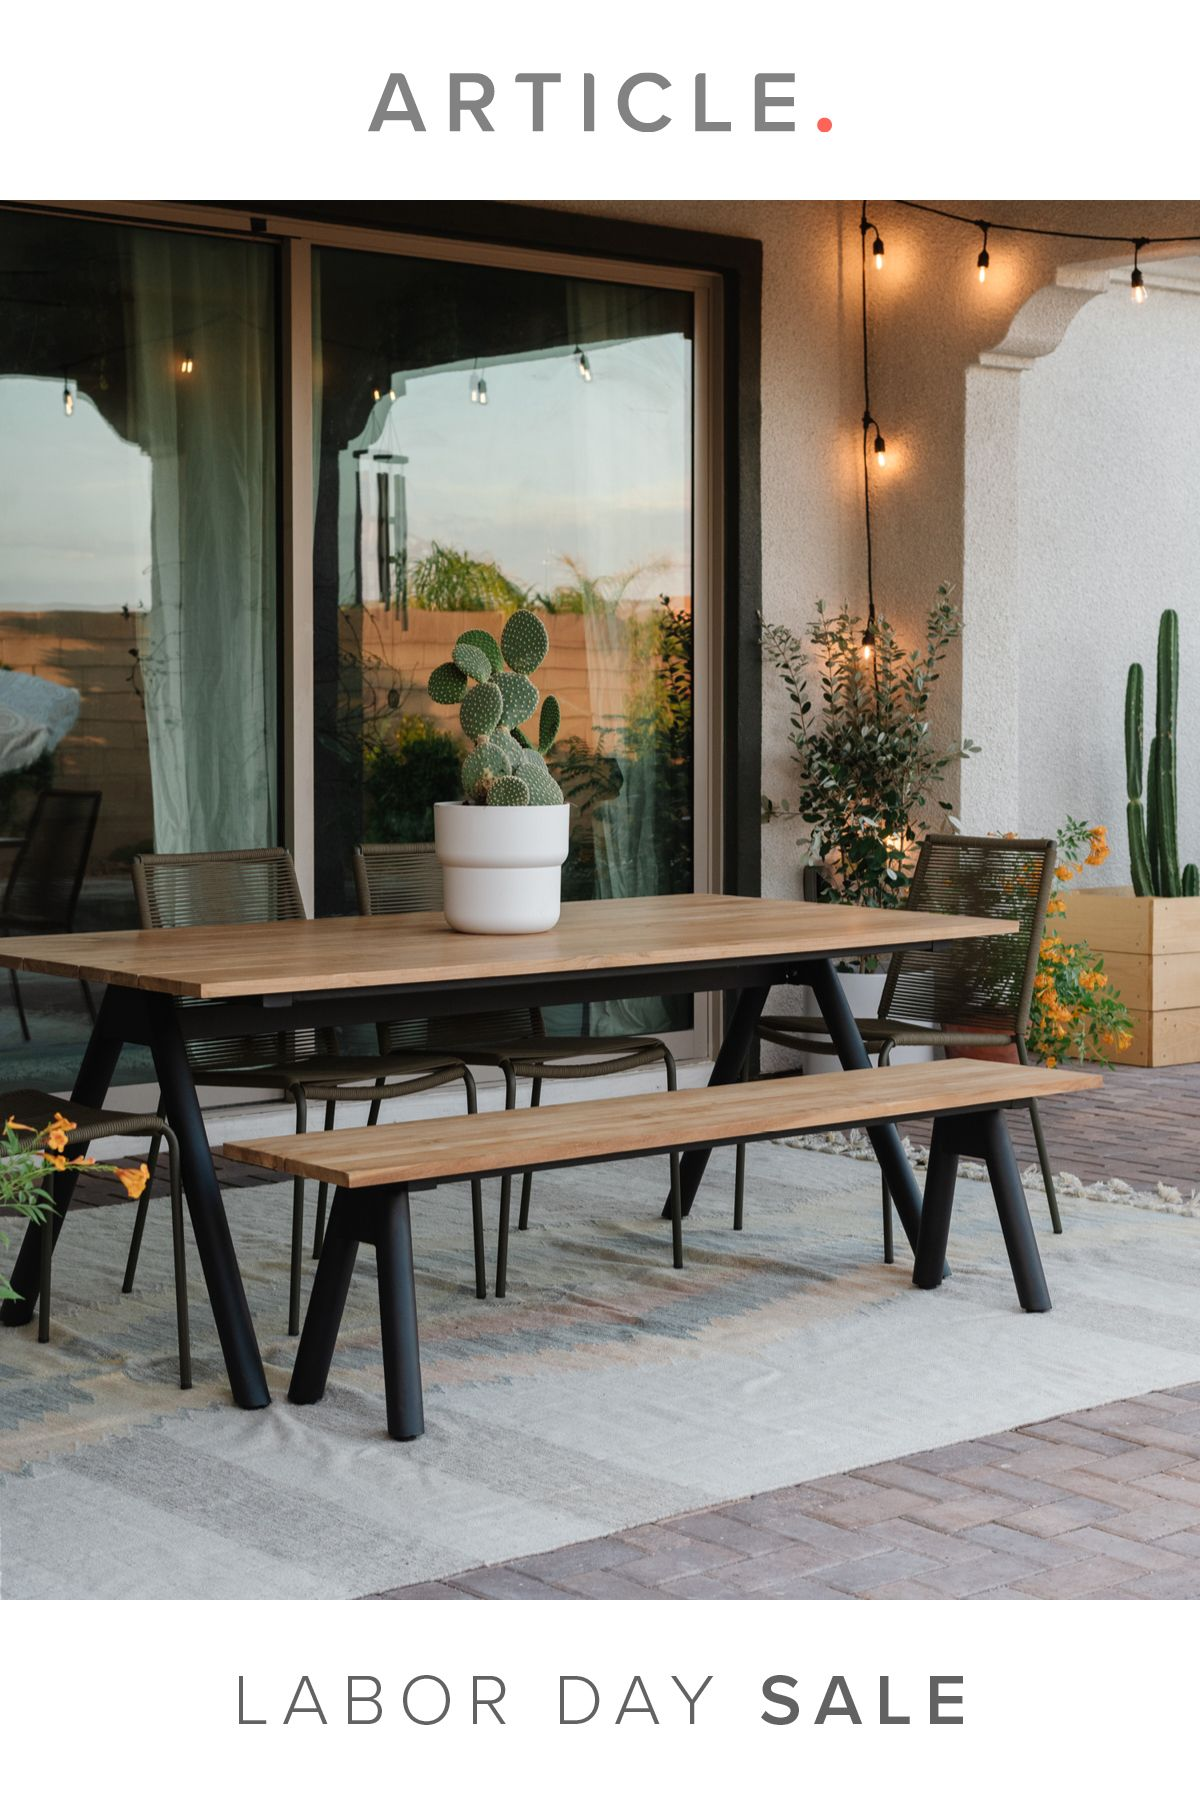 Labor Day Sale Linden Teak Dining Table Set Home Decor Near Me Outdoor Dining Spaces Modern Outdoor Dining Table